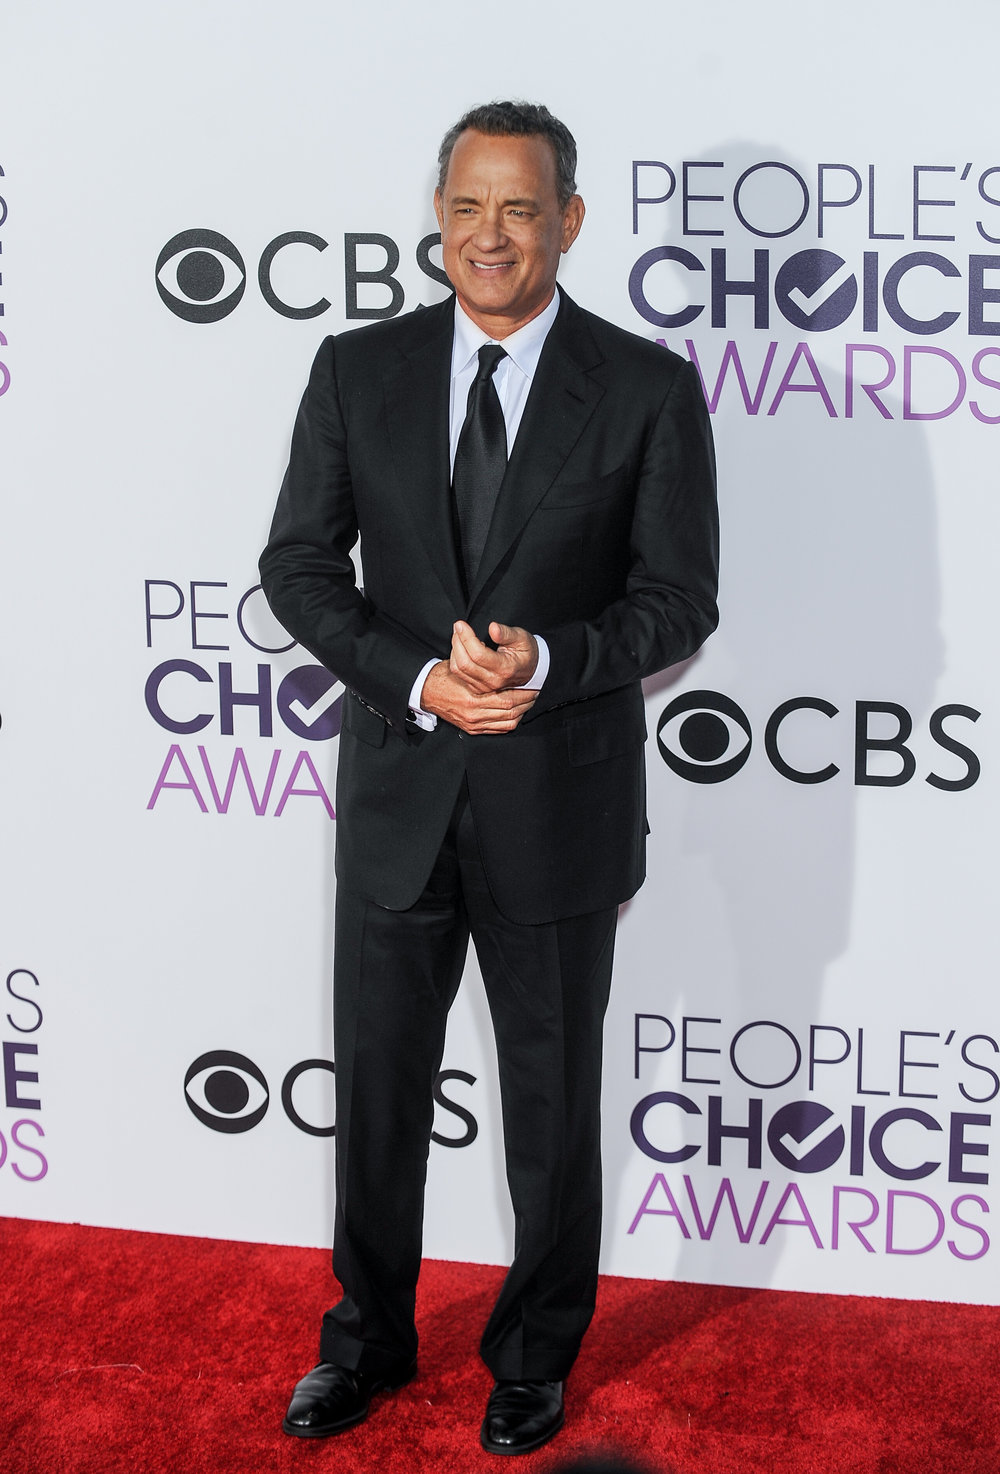 (170119) -- LOS ANGELES, Jan. 19, 2017 (Xinhua) -- Tom Hanks arrives for the People's Choice Awards at the Microsoft Theater in Los Angeles, the United States, Jan. 18, 2017. (Xinhua/Zhang Chaoqun) (djj)